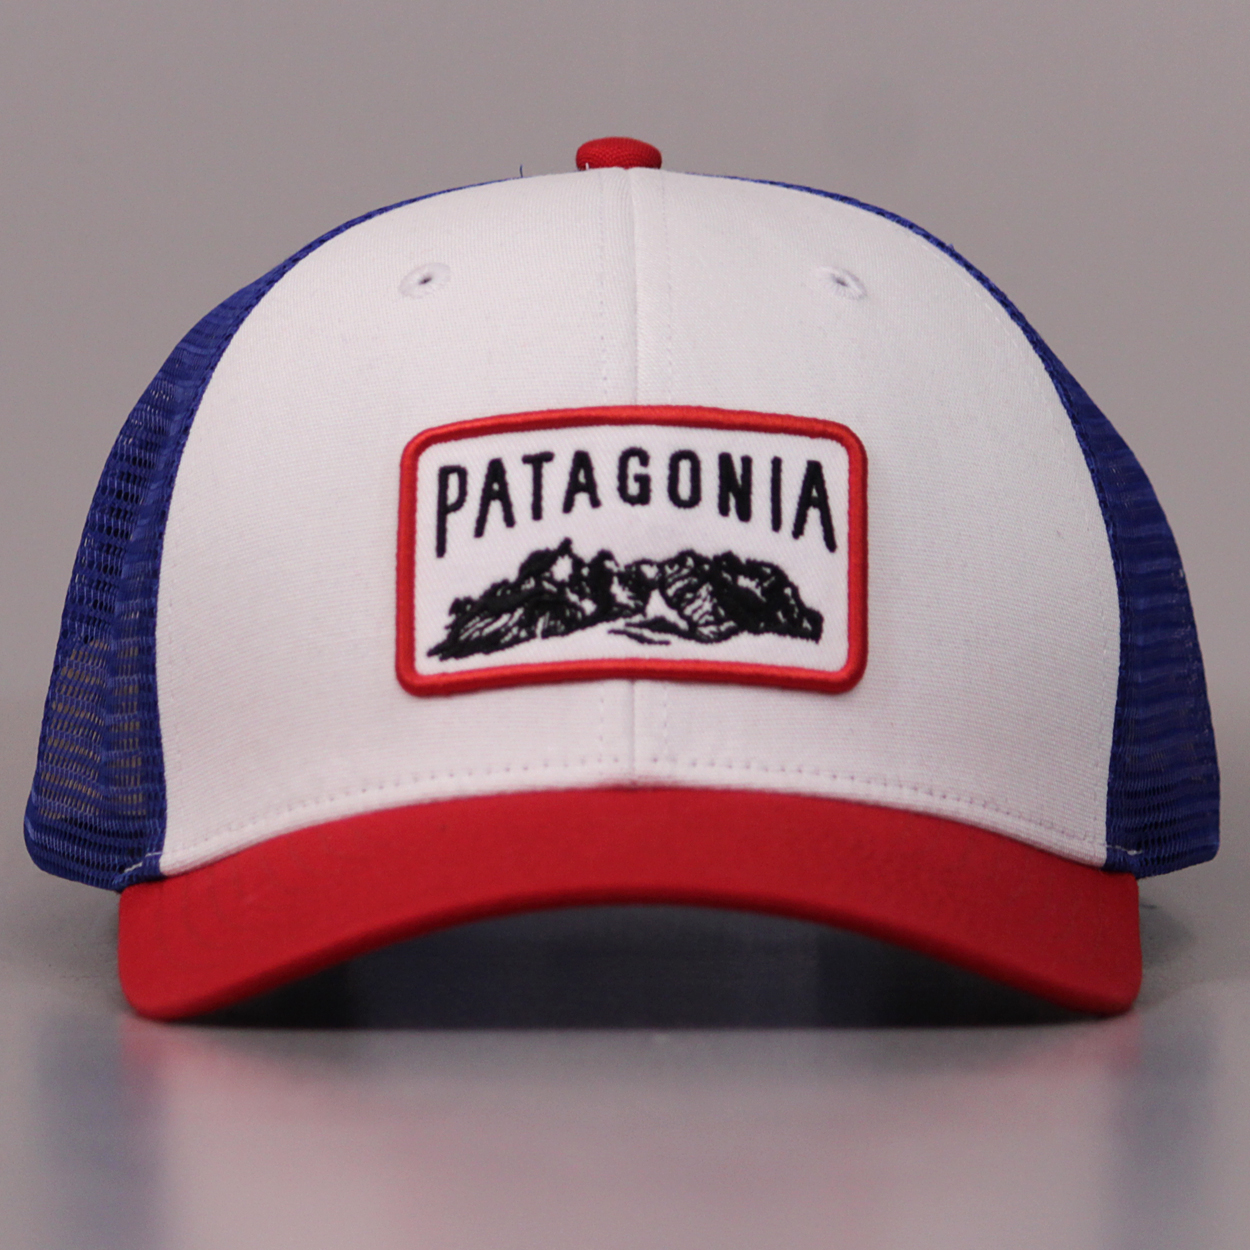 09d052c91e2aa Retro american style trucker cap with an embroidered Patagonia logo at the  front